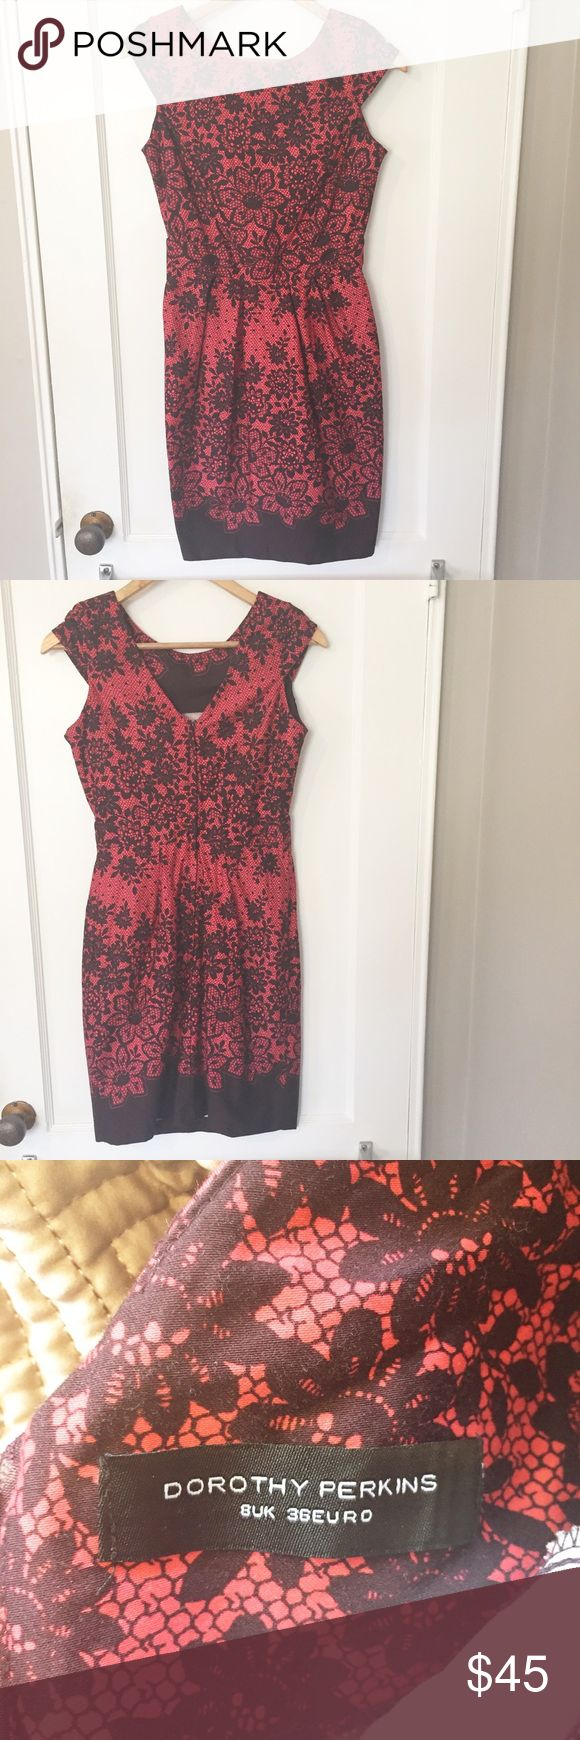 "Dorothy Perkins Red Dress UK Size 8 US Size 6 Laying Flat Bust: 16"" Length: 35"" Dorothy Perkins Dresses Midi"